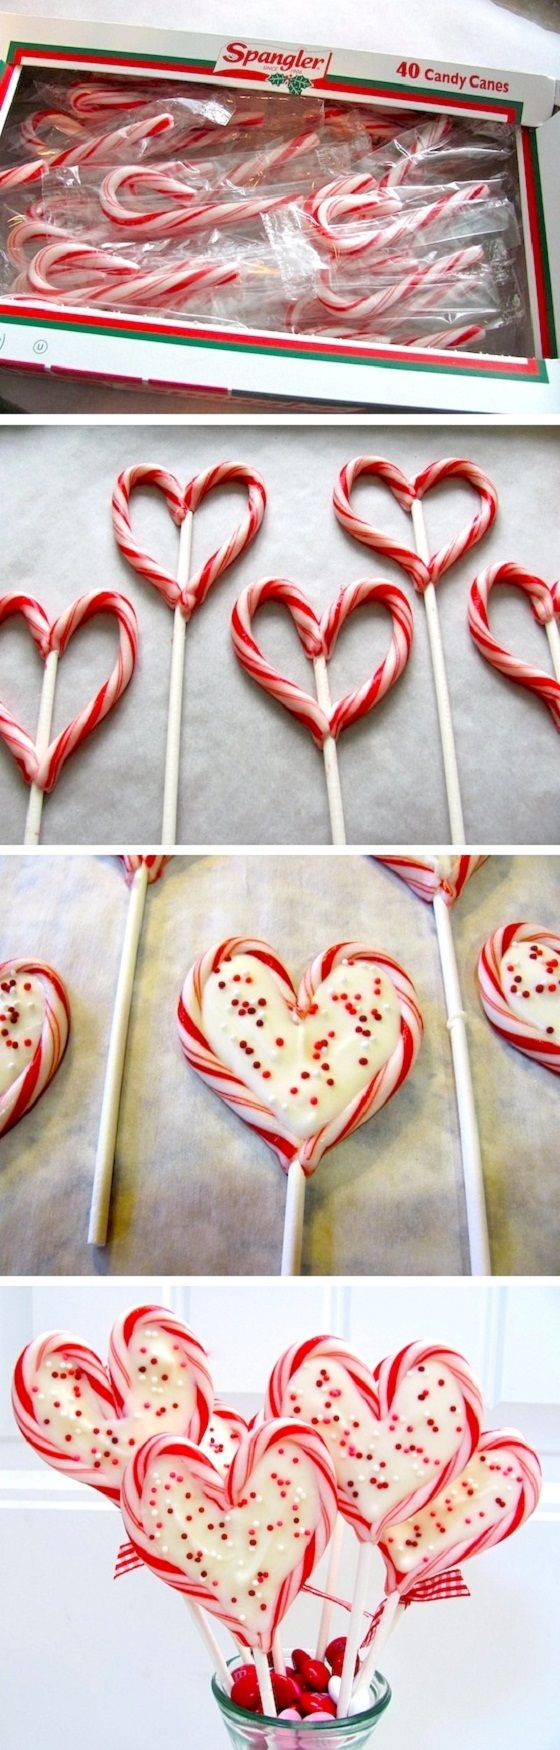 Candy Cane heart shaped lollipop. Just bake at 300F for 3 minutes, then quickly shape like a heart around a lollipop sucker stick. You could fill the suckers with white chocolate and sprinkles too, but I like just the plain candy cane sucker hollow in the middle.